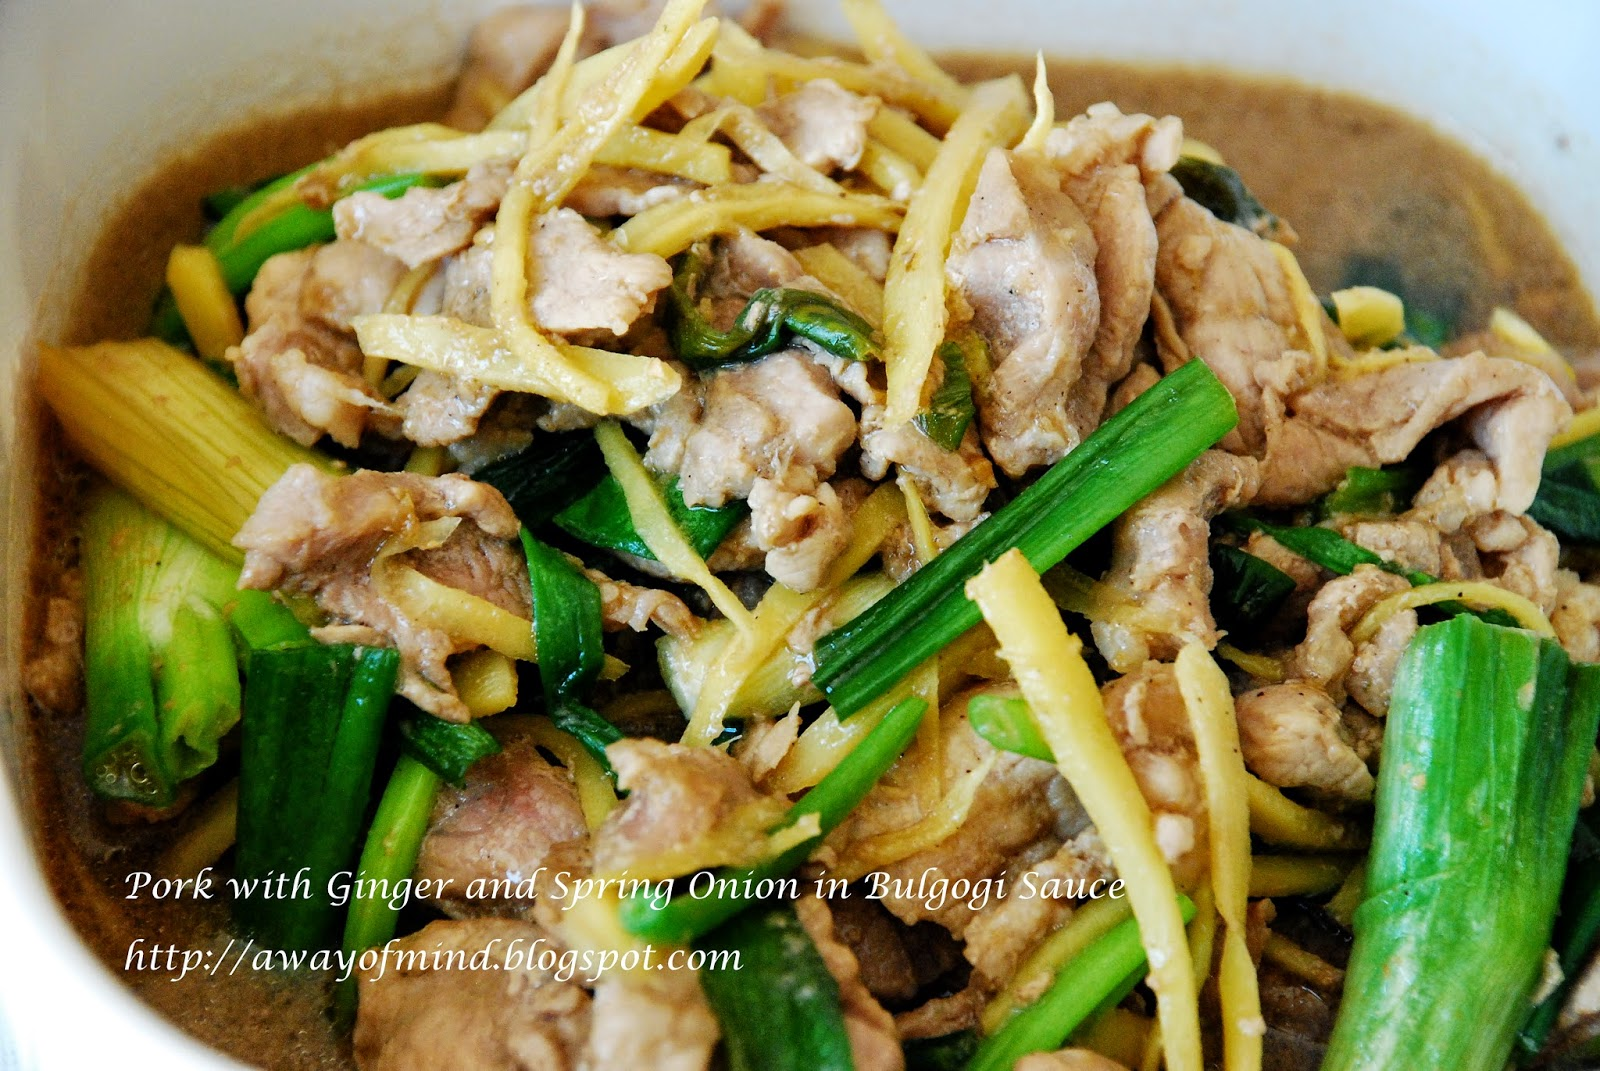 Awayofmind Bakery House: Pork with Ginger and Spring Onion ...